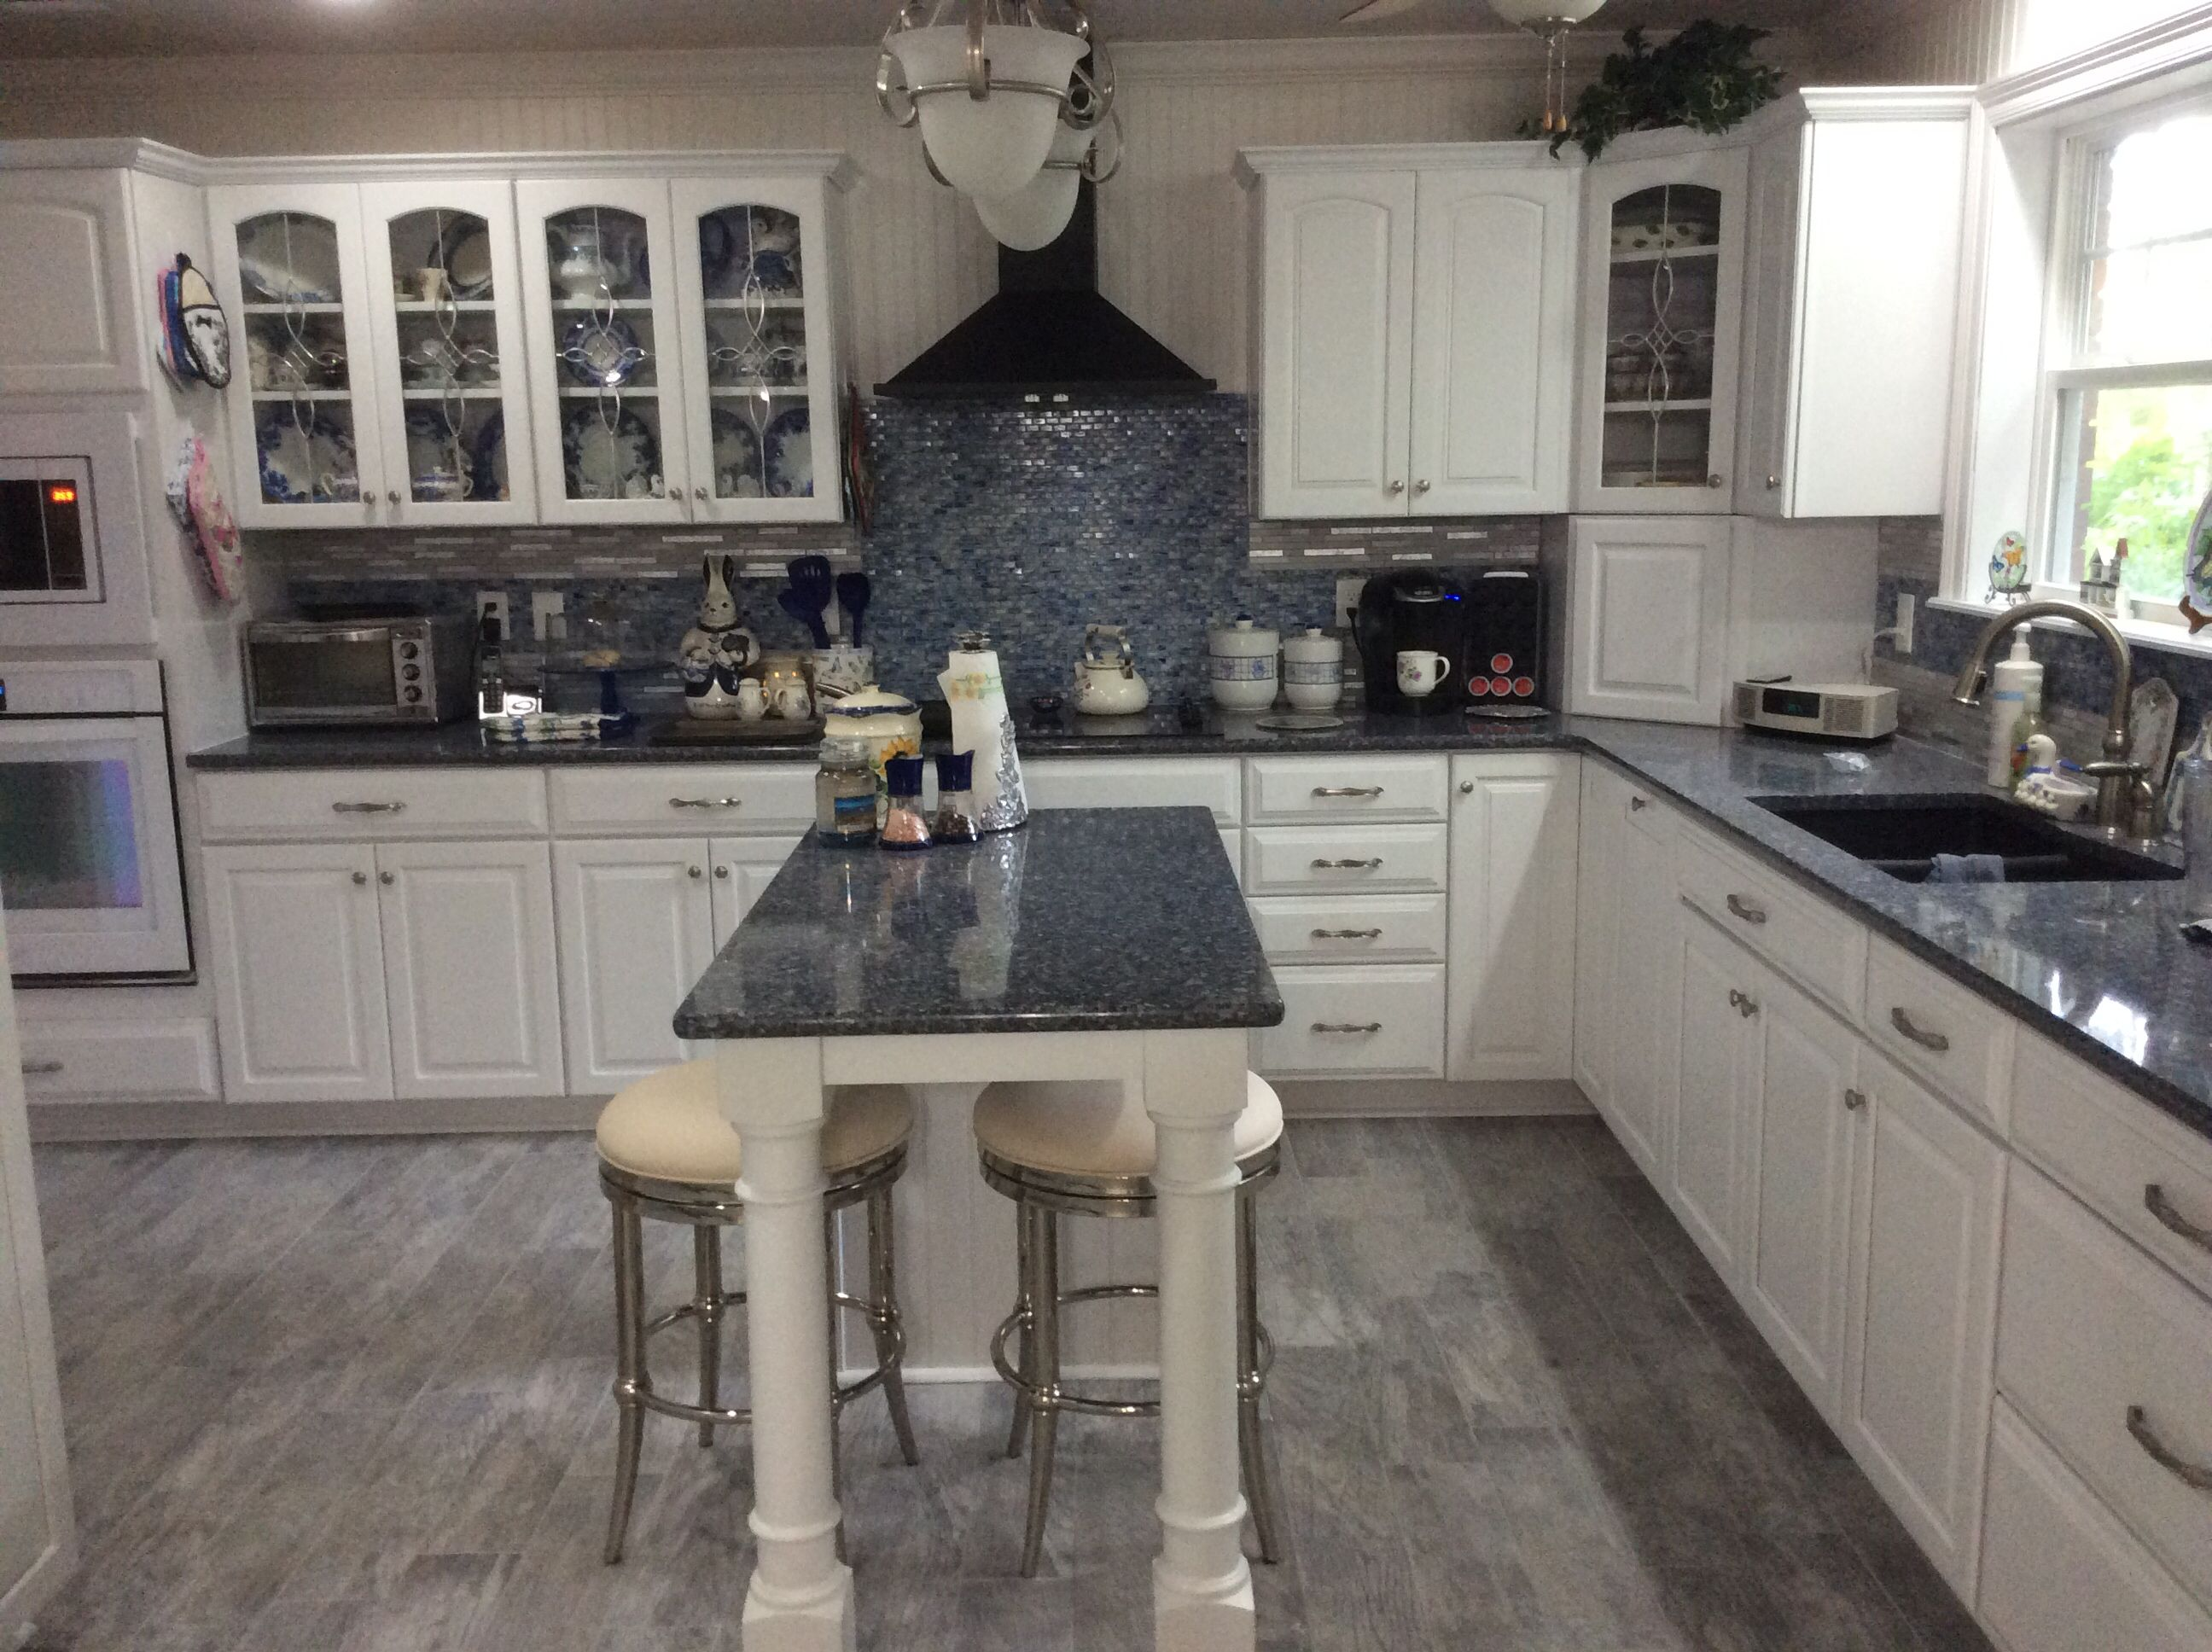 tile kitchen cabinets home depot Blue and white kitchen Cambria Quartz countertop Parys Kraft maid cabinets Home Depot